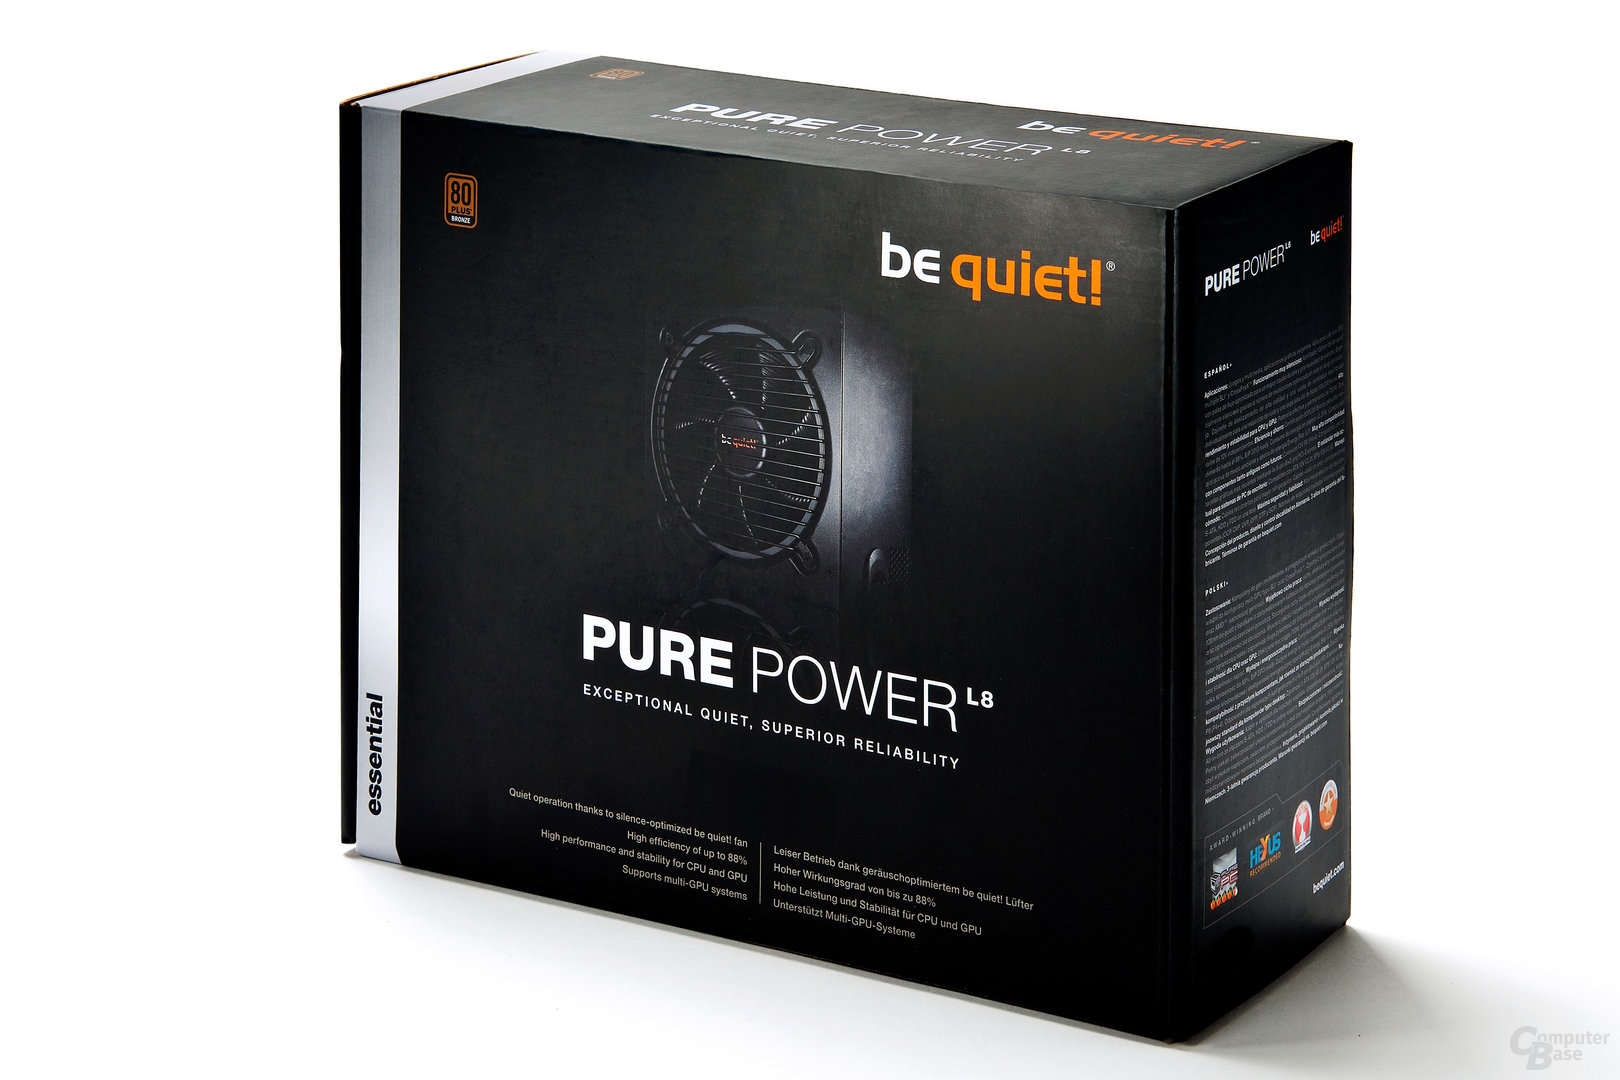 be quiet! Pure Power L8 - Verpackung